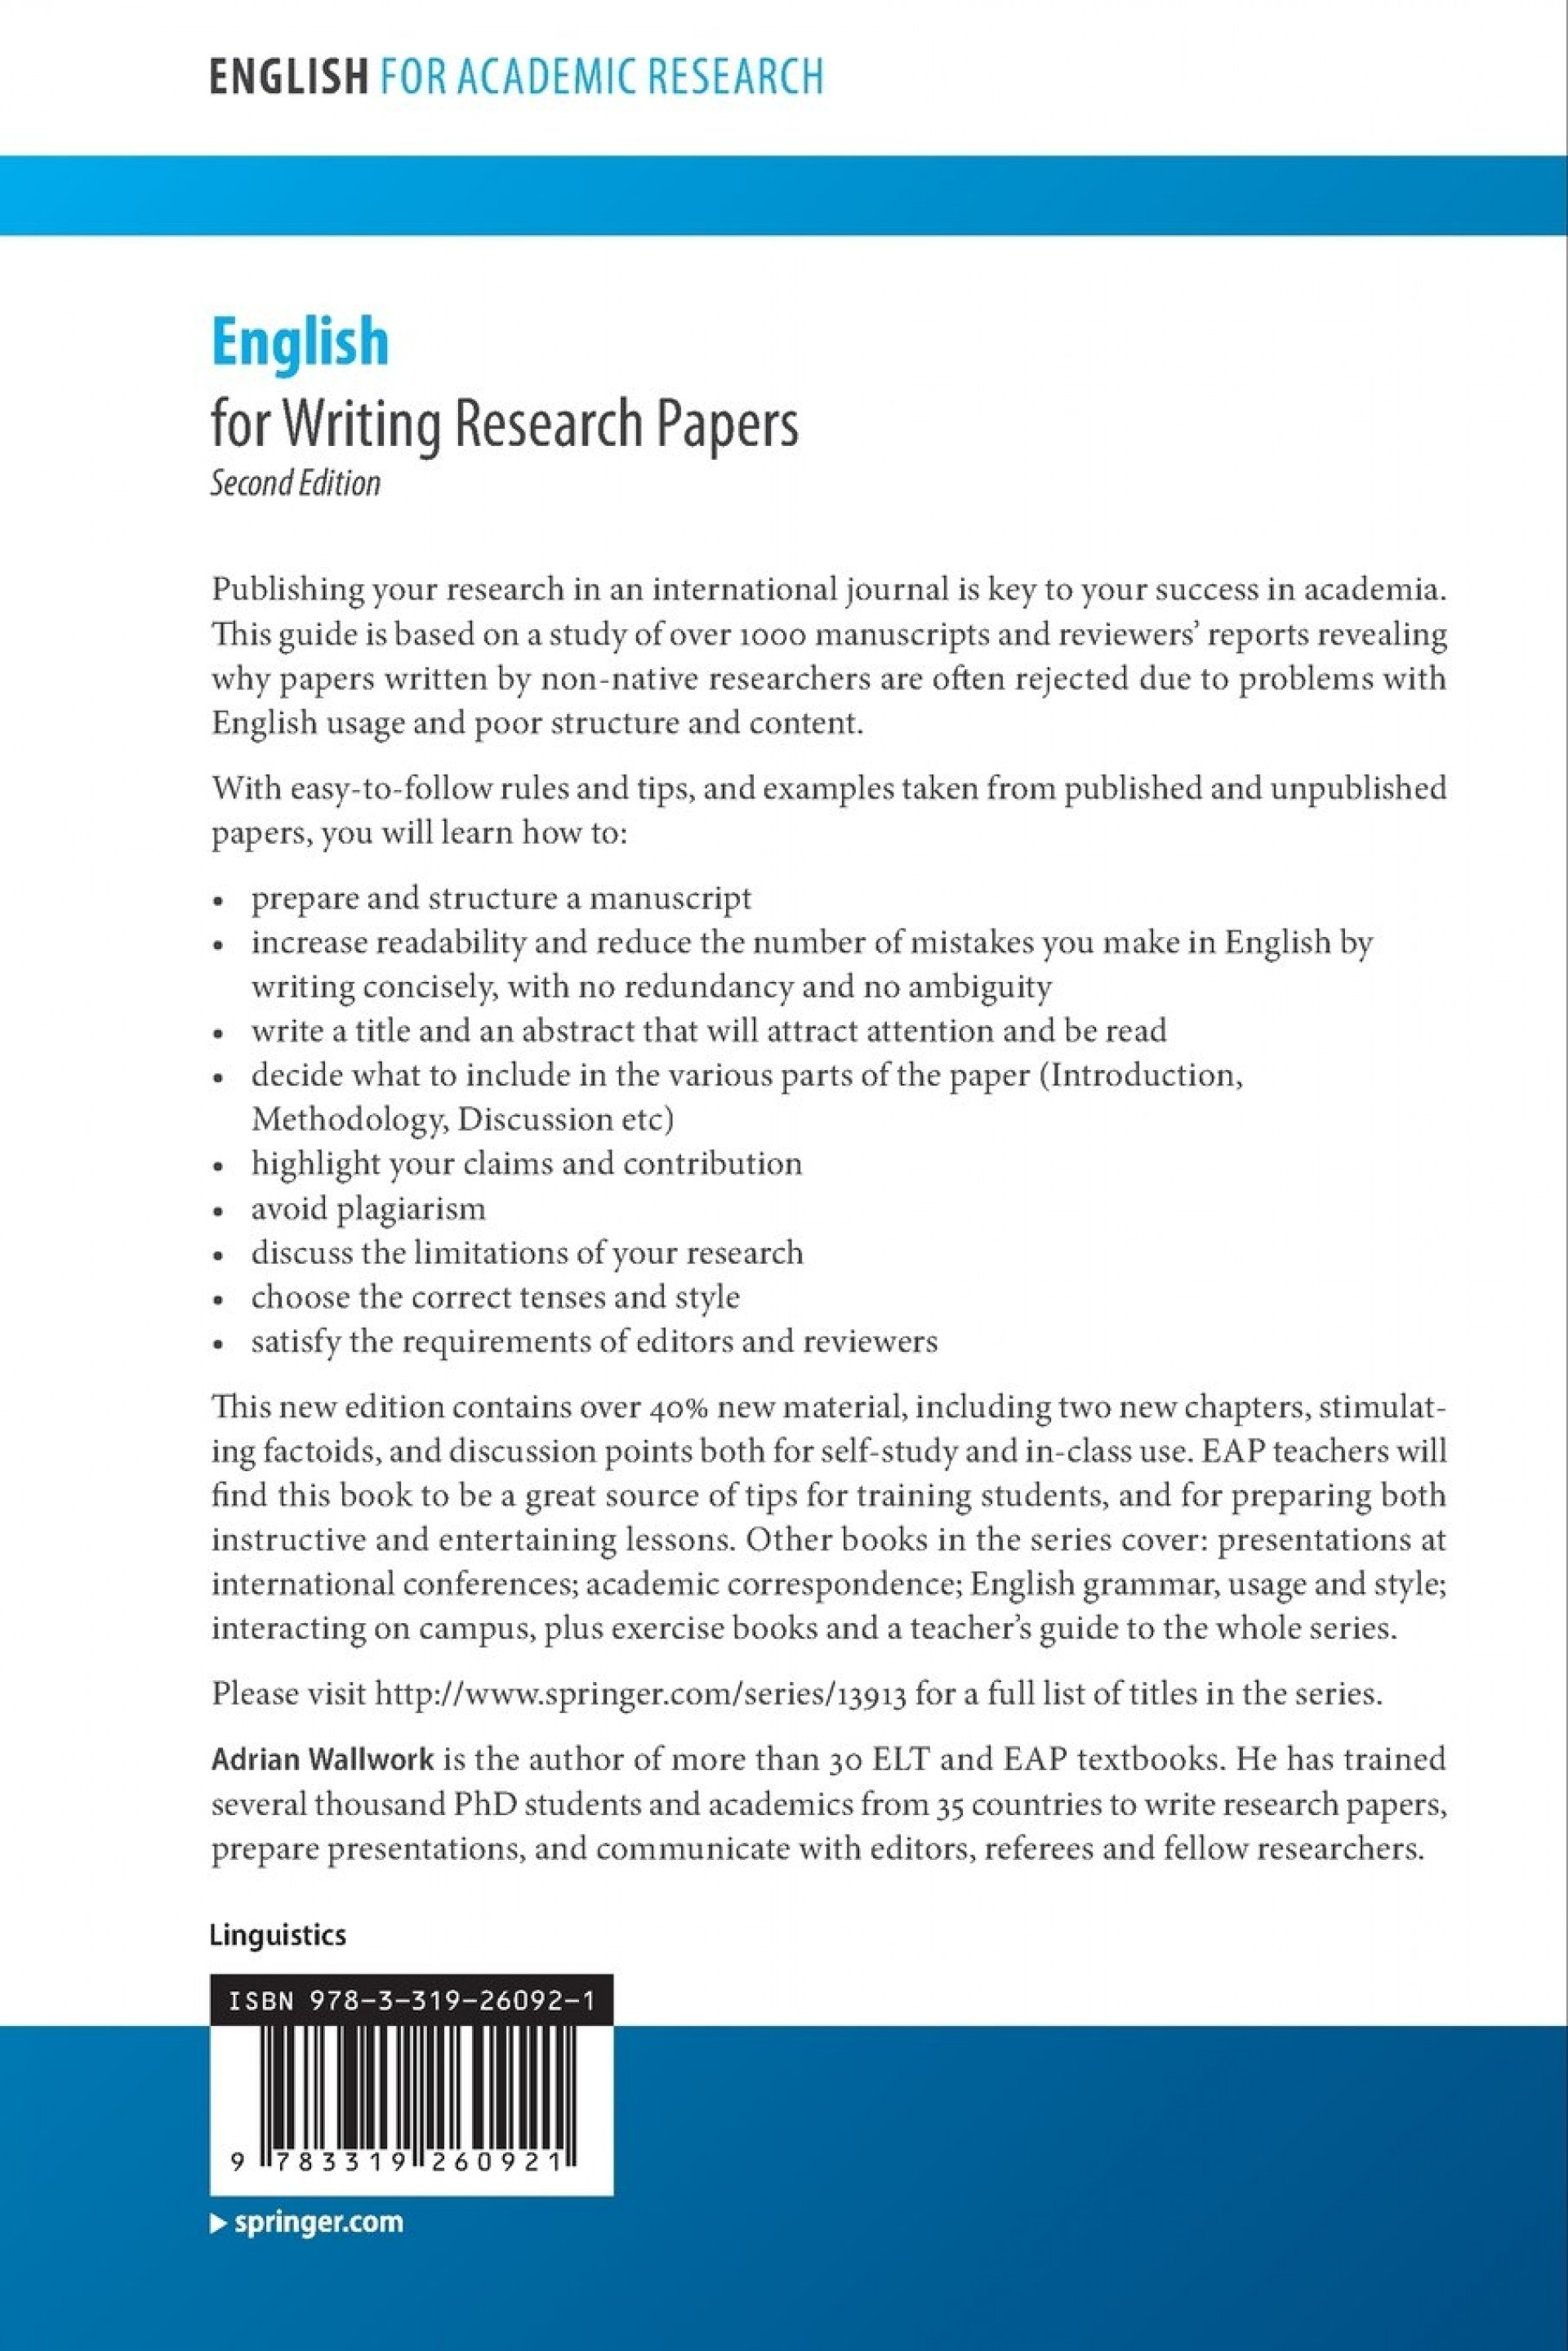 001 71eexuoeuql Research Paper English For Writing Papers Awesome Springer Pdf Useful Phrases - 1920